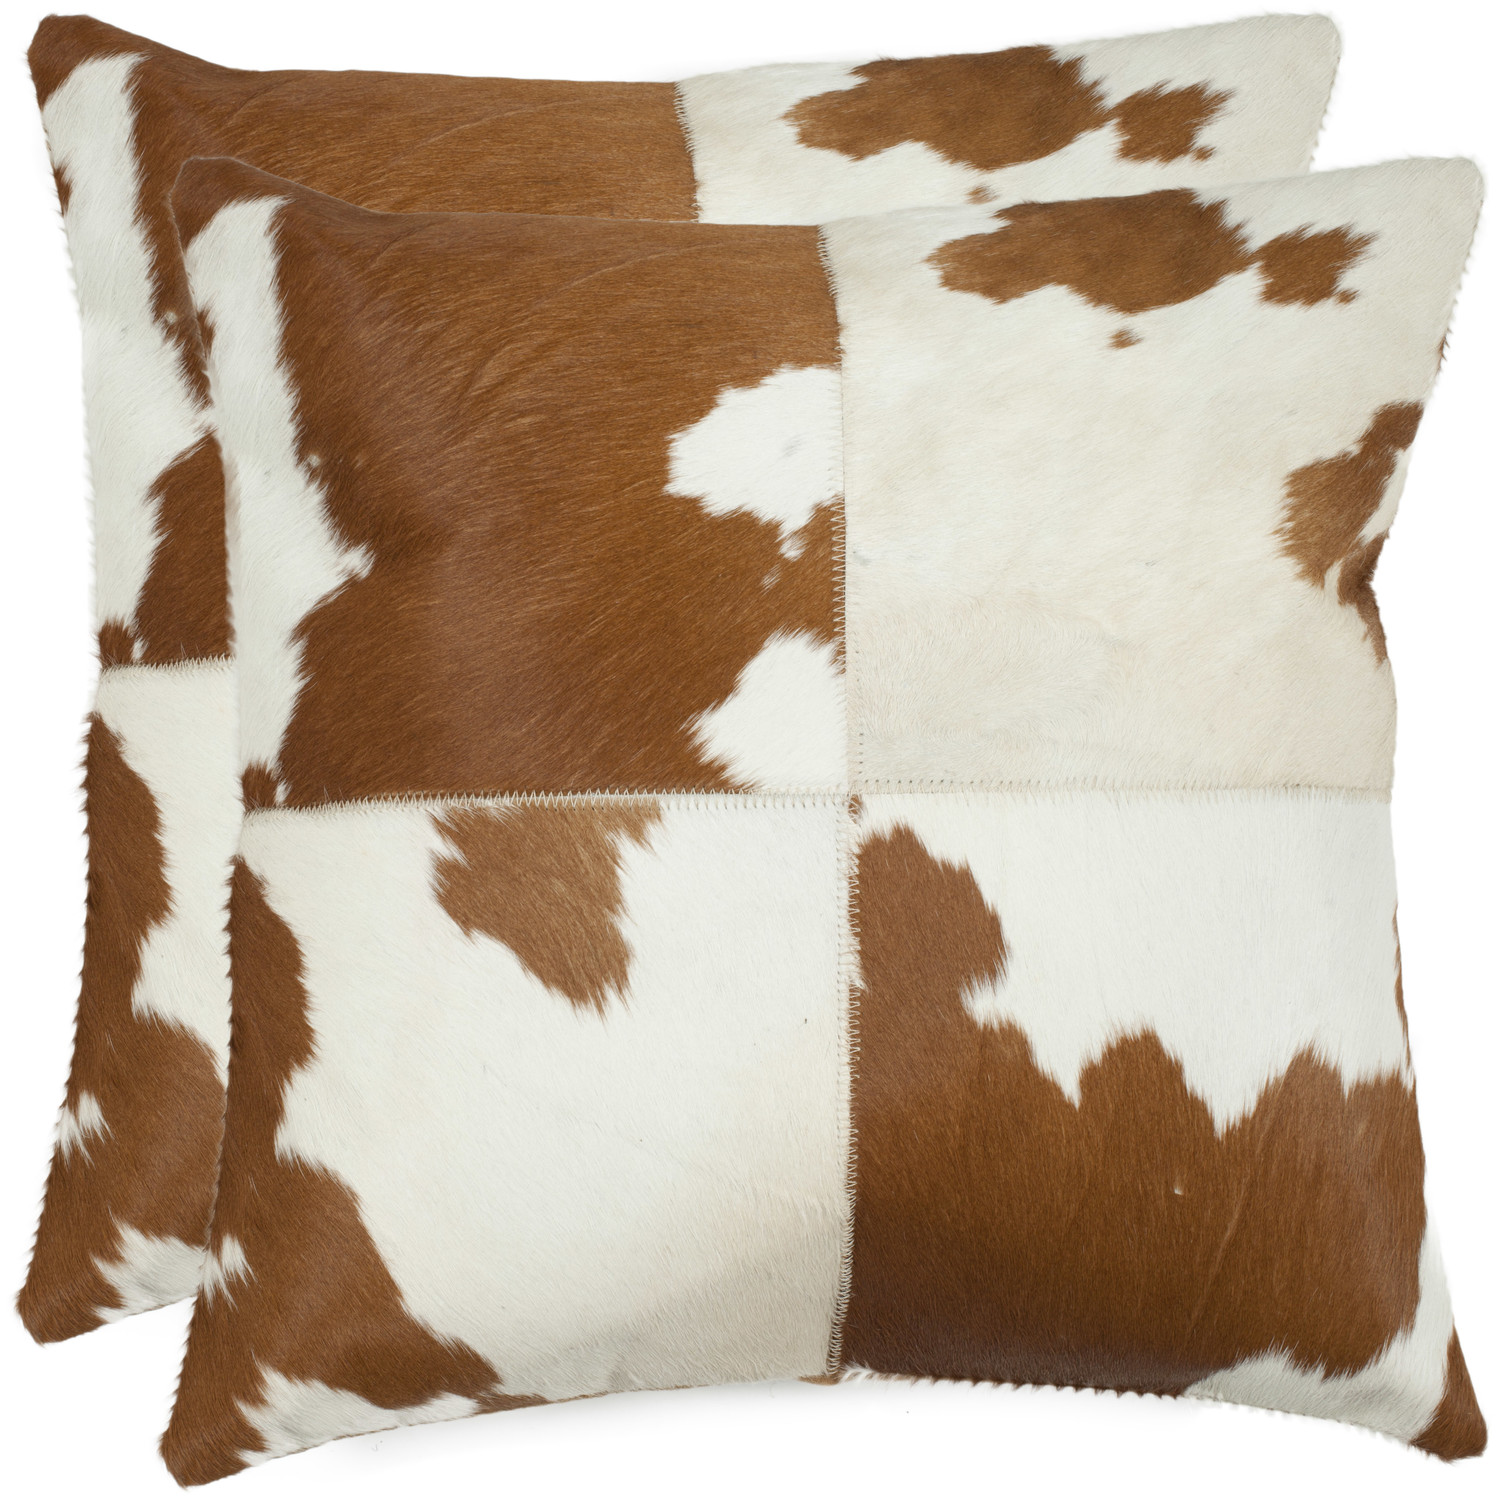 Mosaic cowhide pillow